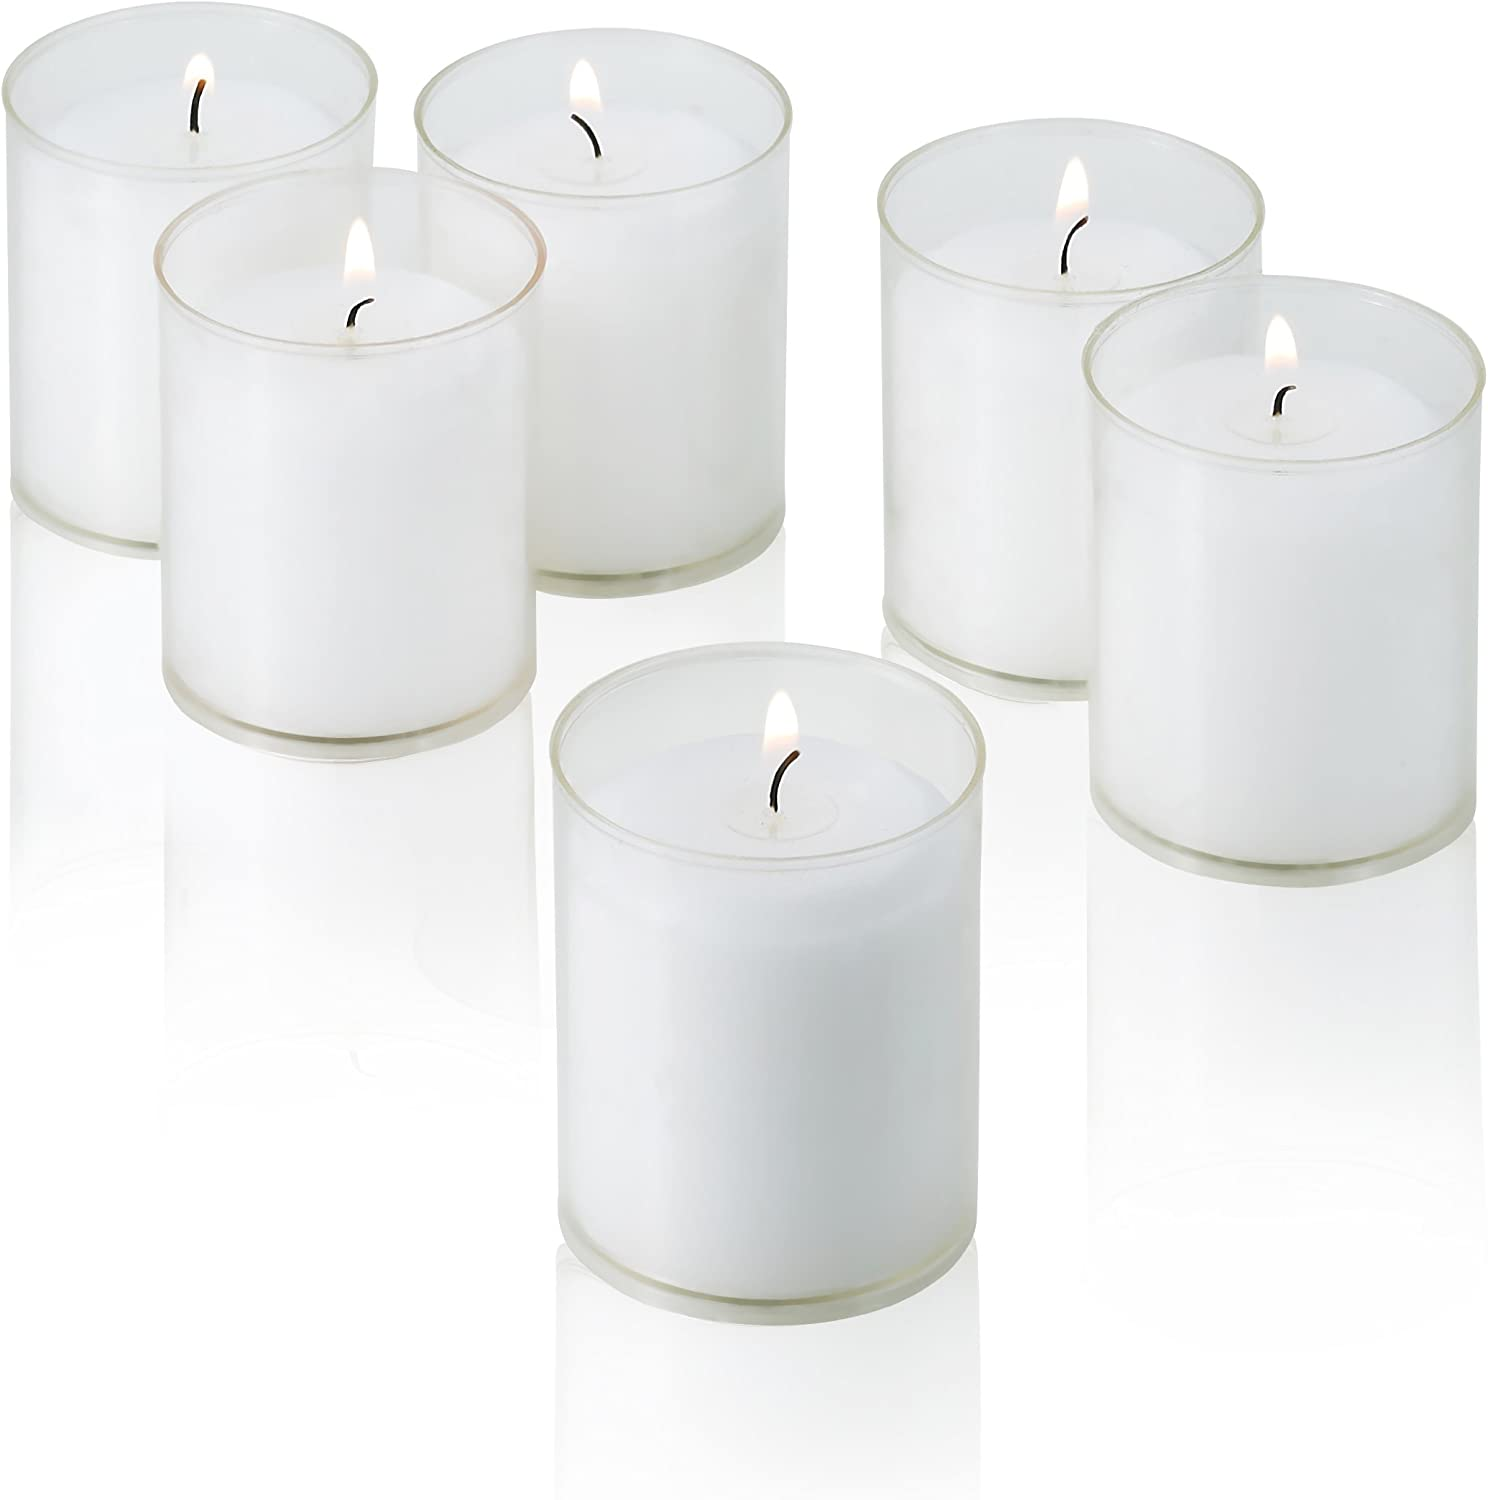 White Votive Candles In Clear Cups Burn 24 Hour Set Of 24 Unscented By Light In The Dark Amazon Co Uk Kitchen Home